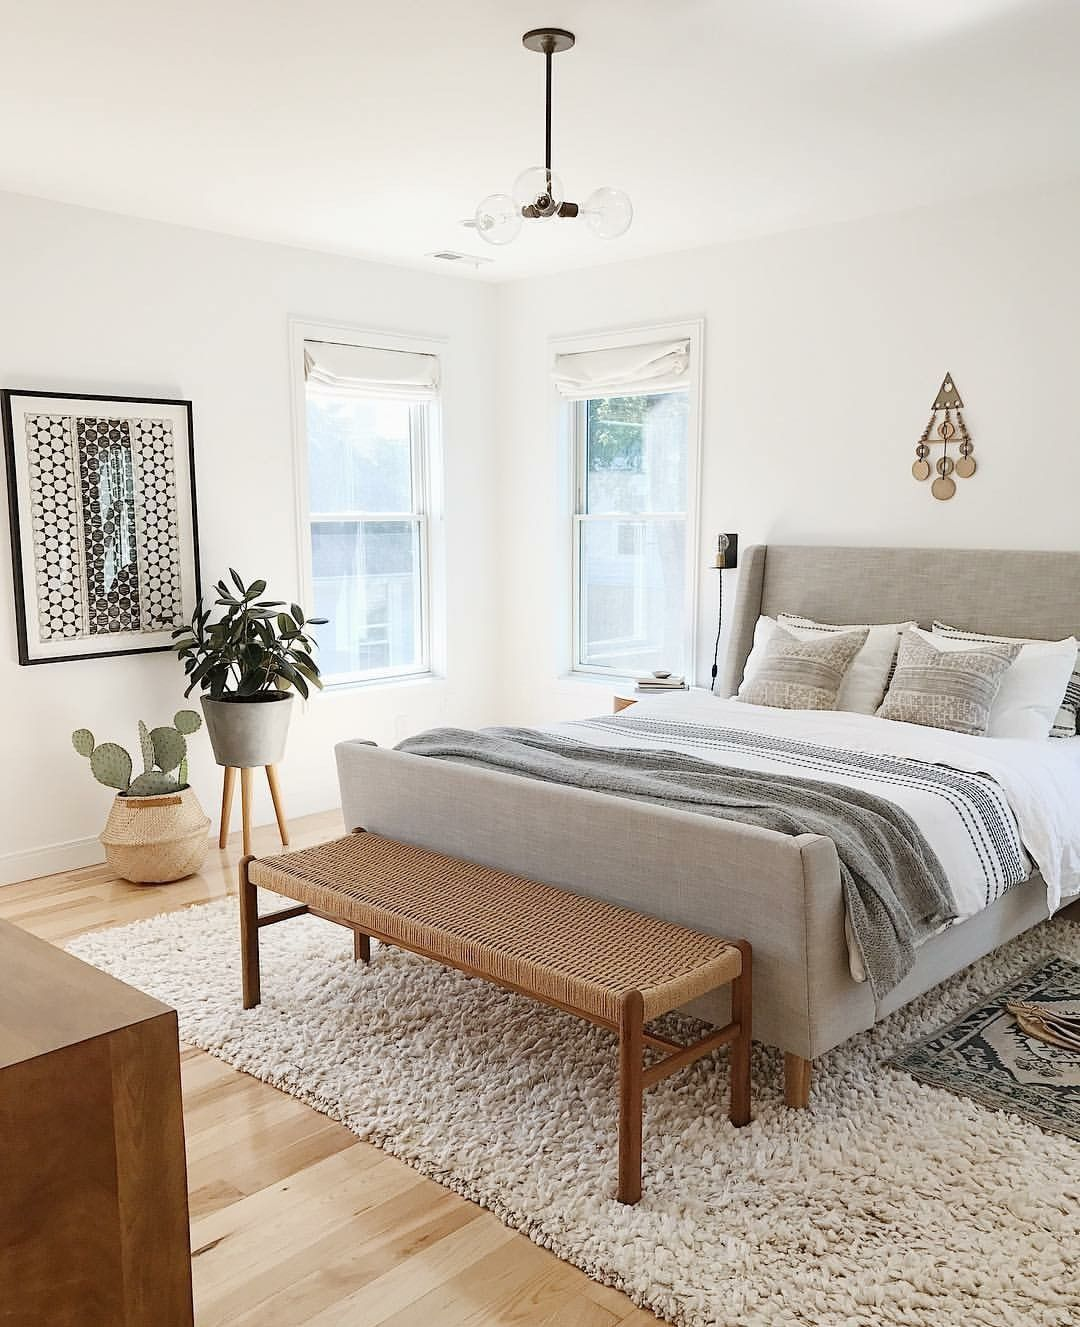 Pinterest Com Thesophdaly Bedroom Inspirations Home Bedroom